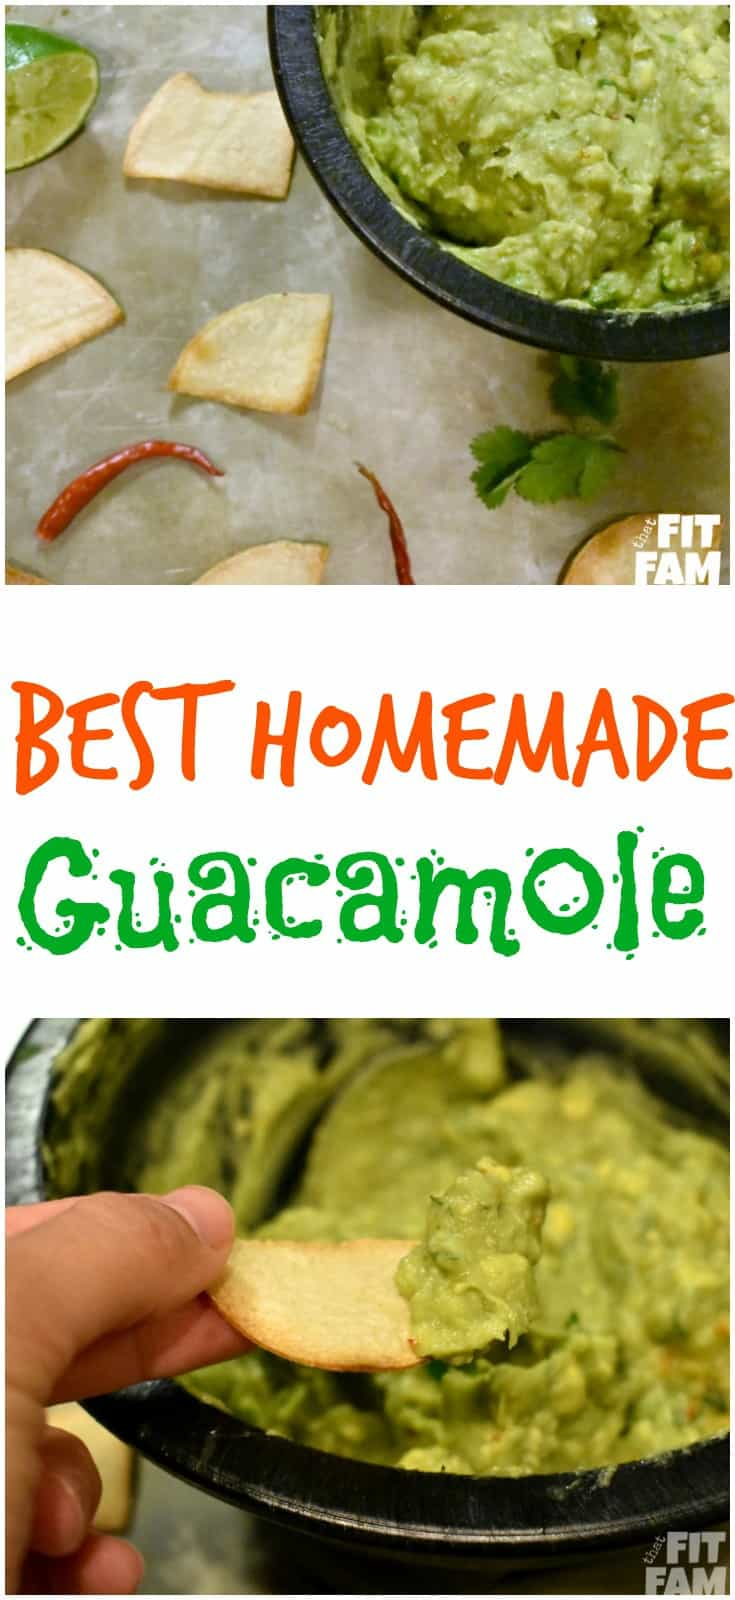 best homemade guacamole recipe! authentic mexican guacamole, secret ingredient makes this so good! we are addicted!